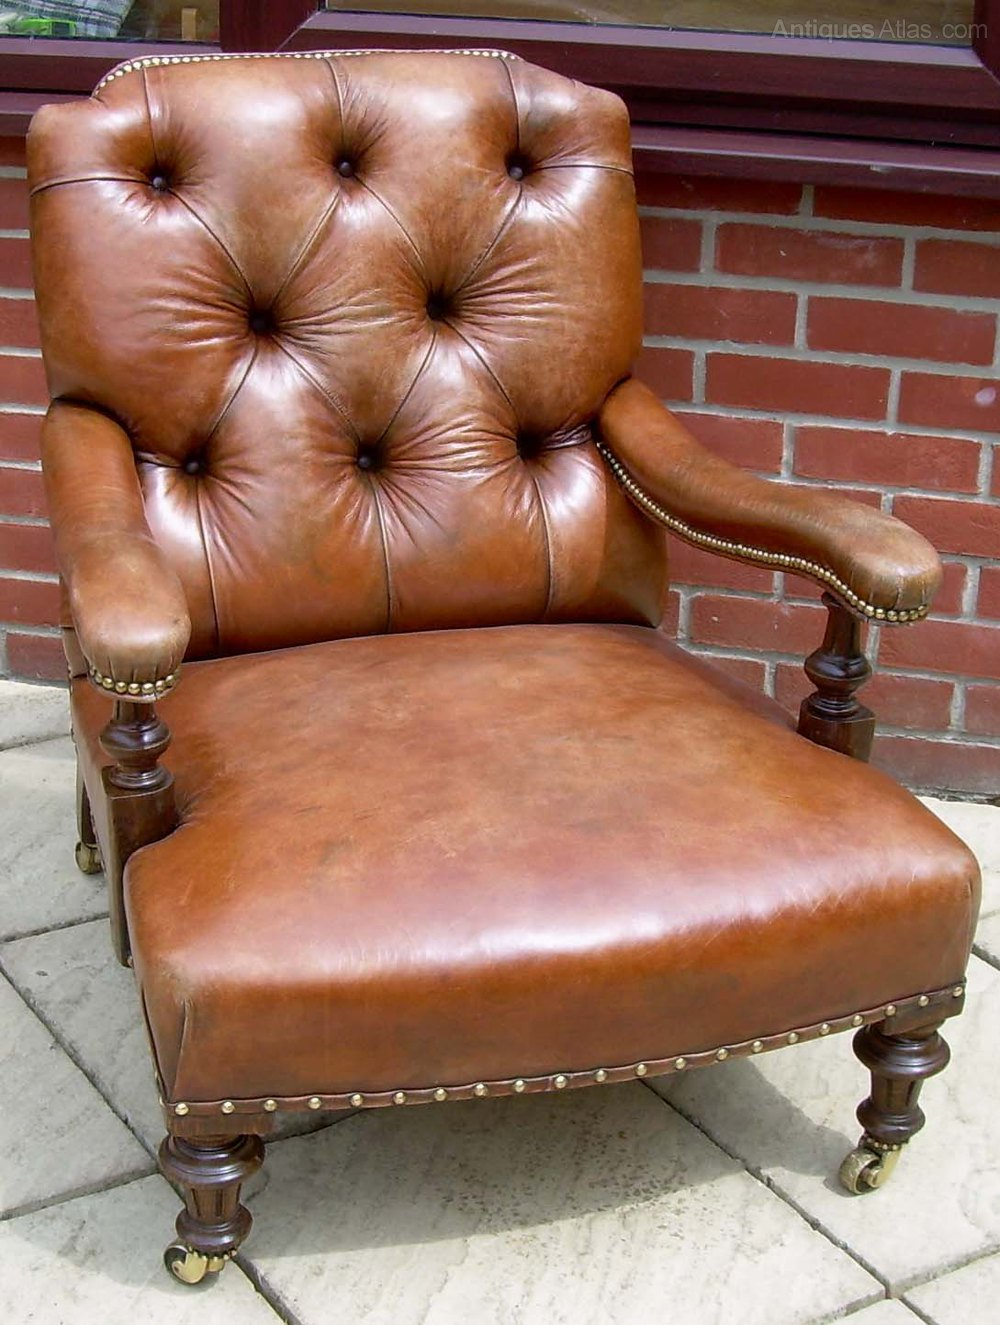 A Victorian Leather Armchair - Antiques Atlas